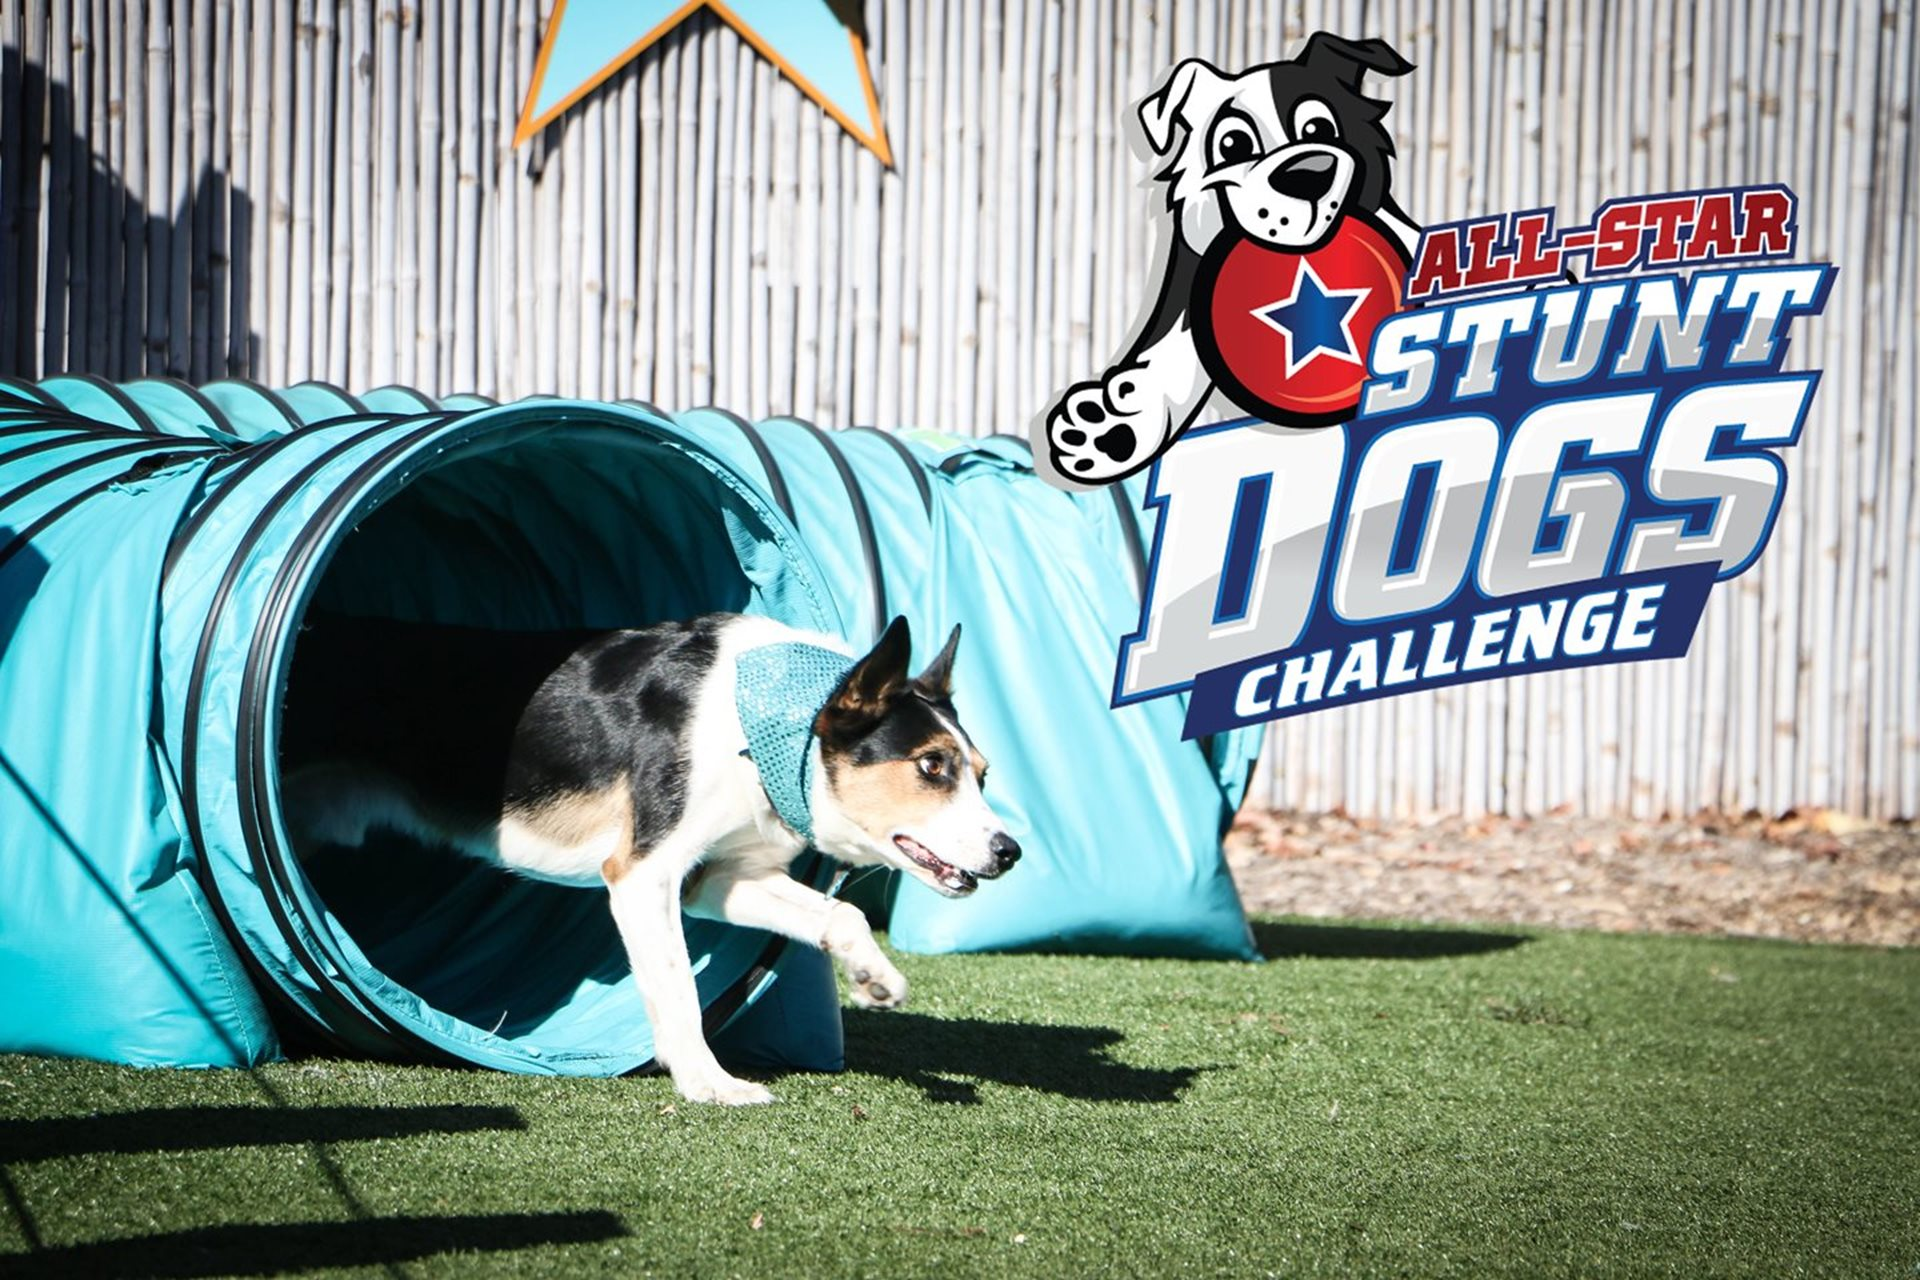 All-Star Stunt Dogs Challenge